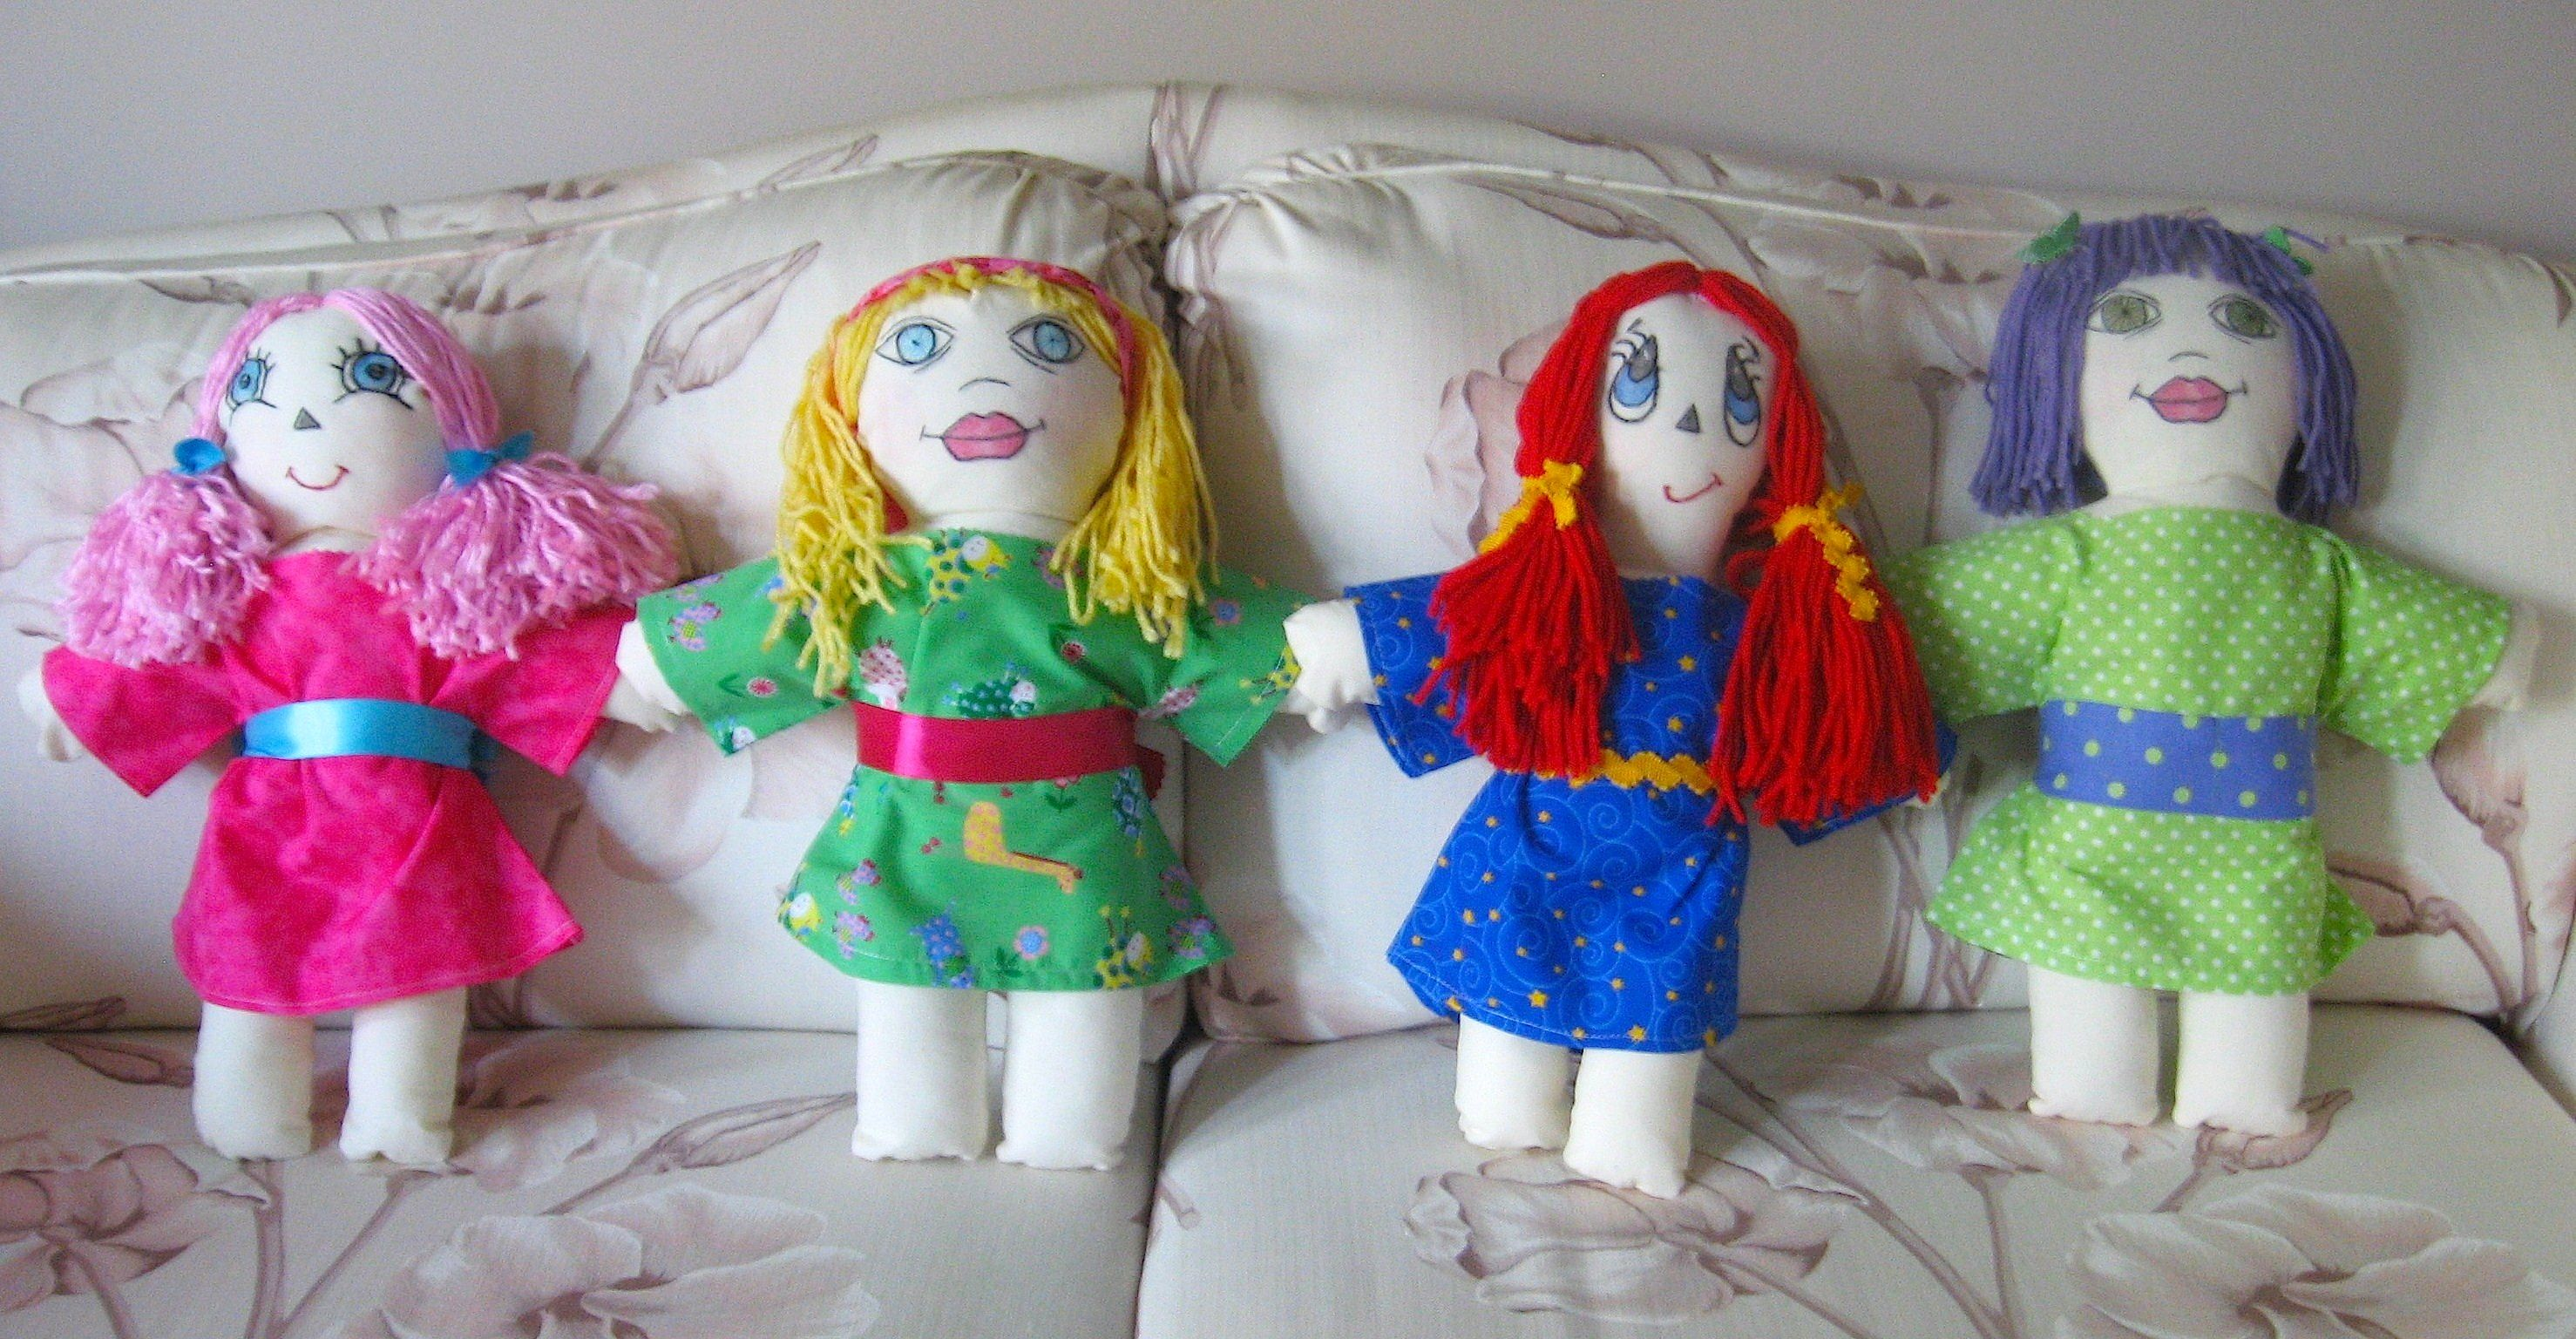 Made these cloth and yarn dolls for the daughters of my niece and nephews.